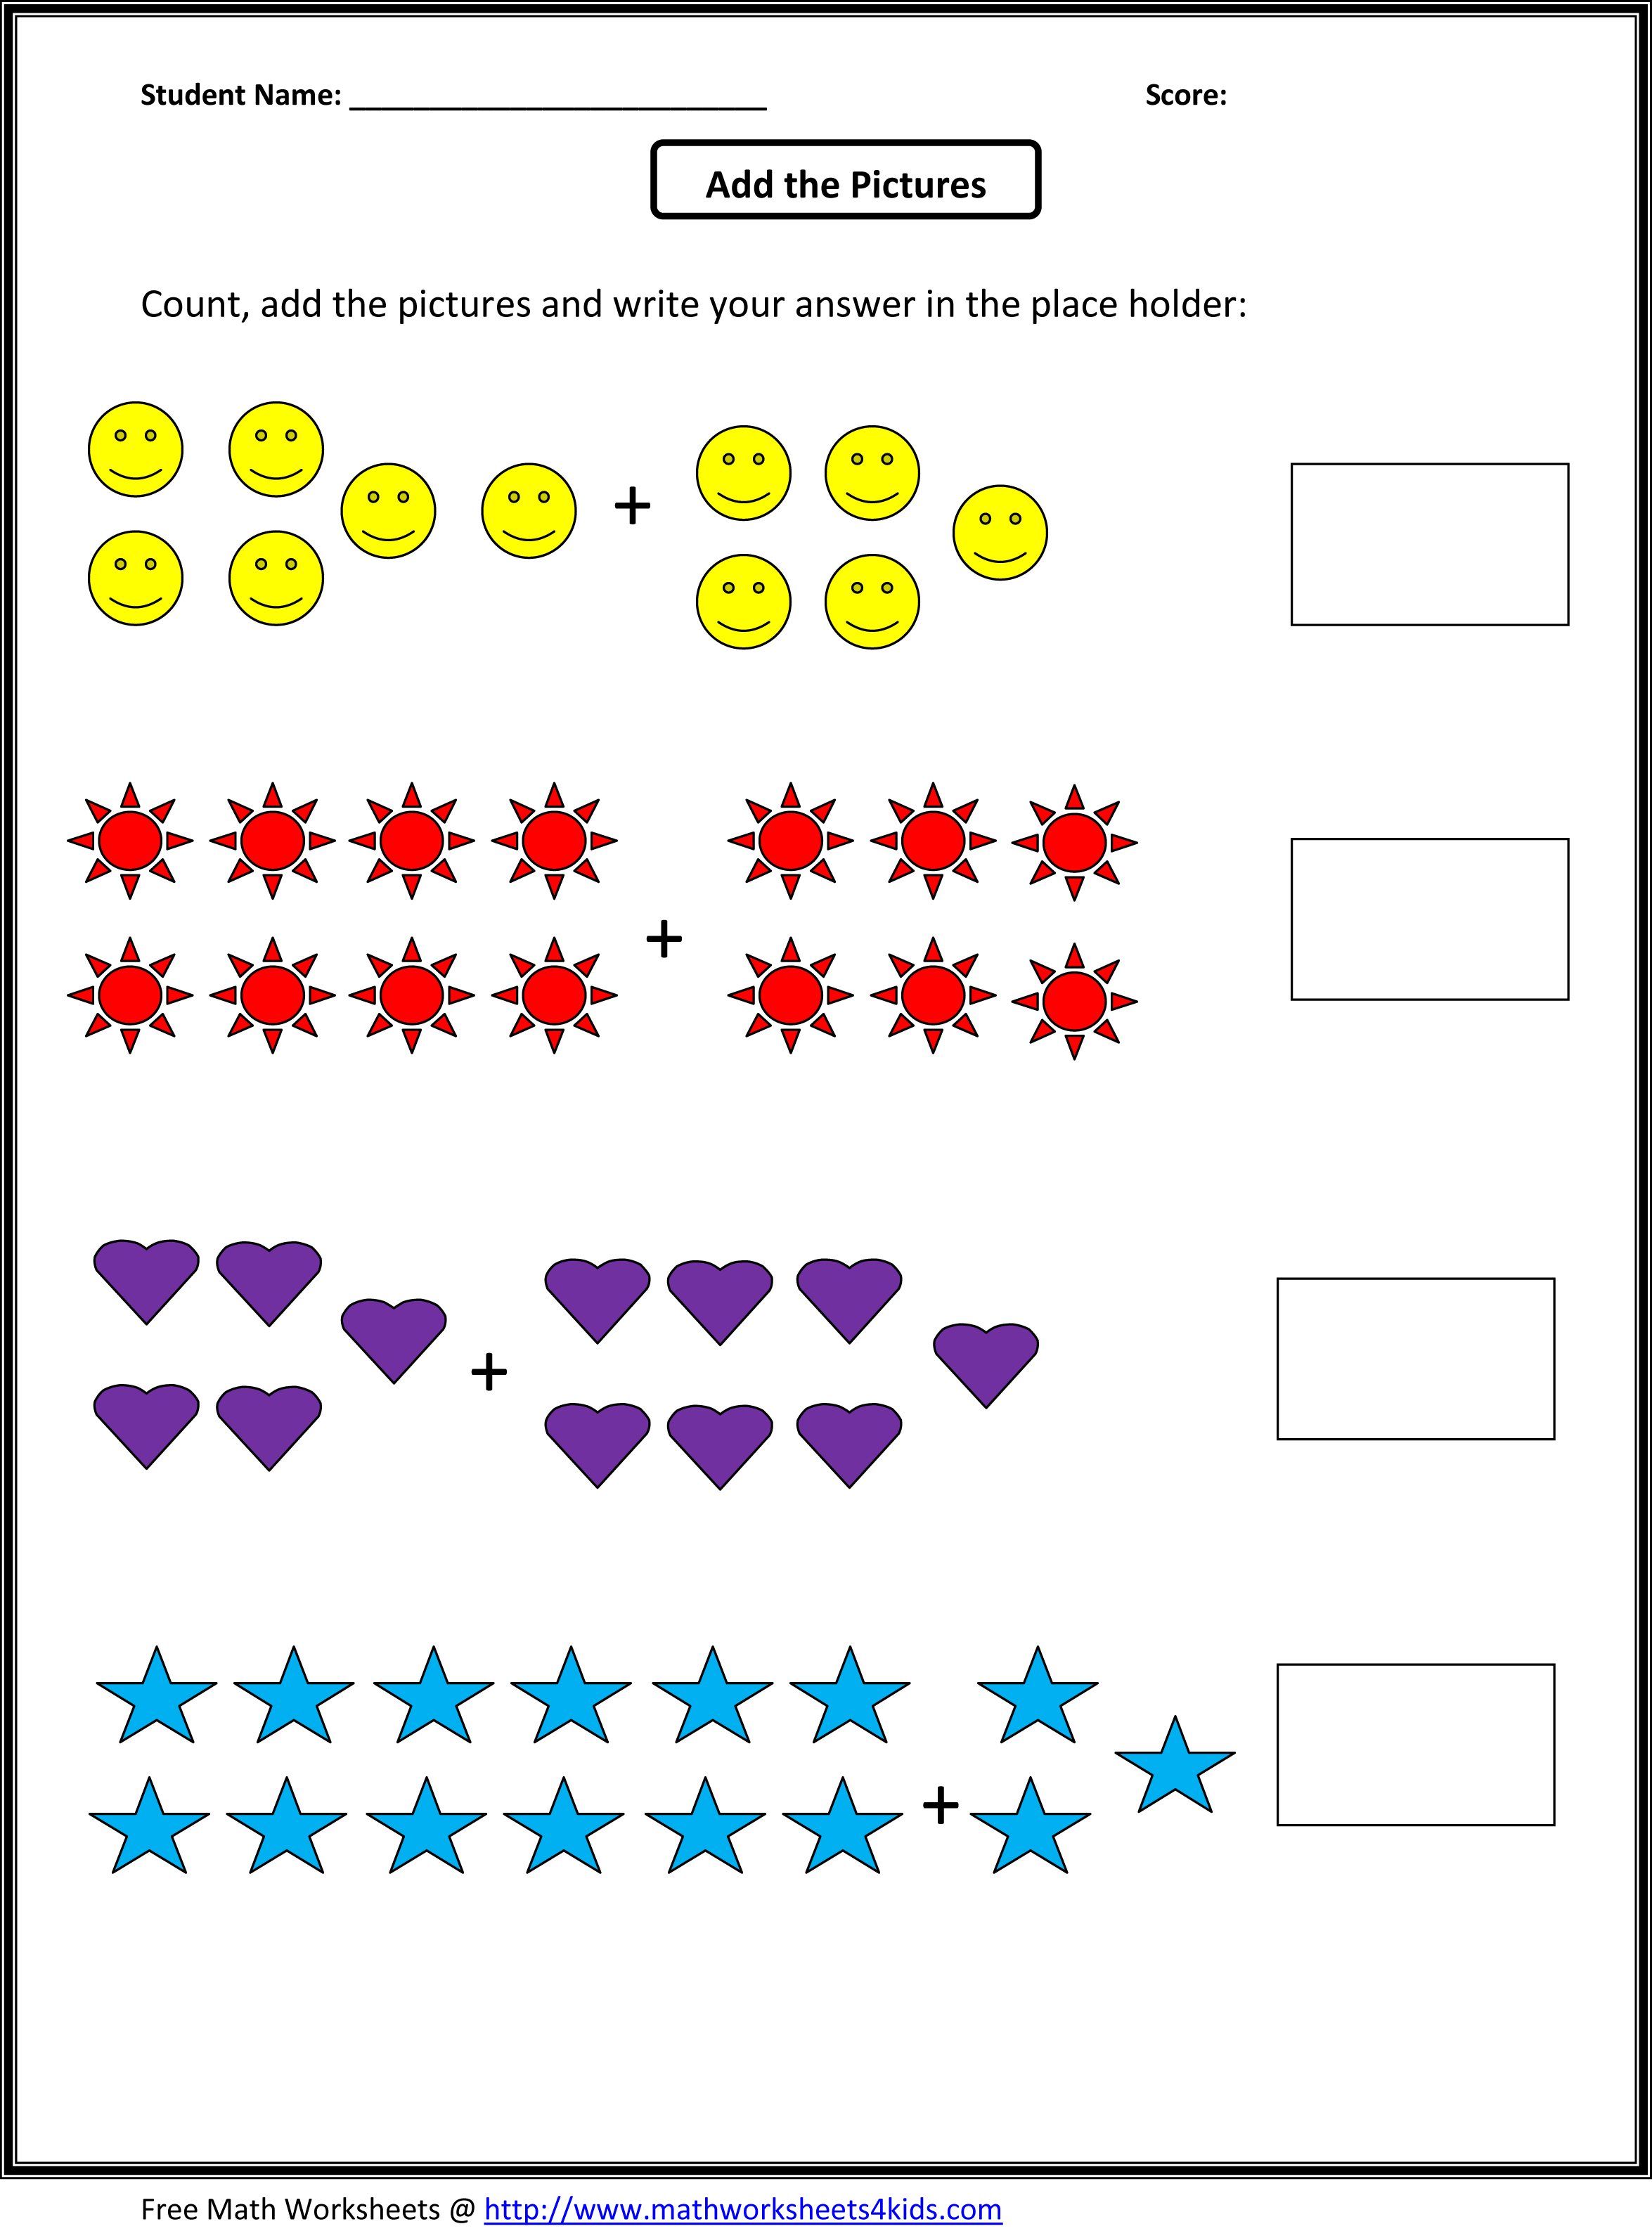 Weirdmailus  Personable Grade  Maths Worksheet  Reocurent With Gorgeous Math Worksheets For St Grade Free  Reocurent With Awesome Fraction Bar Worksheet Also Common Core Worksheets Word Problems In Addition Paul Revere Worksheet And Slope Intercept Form Worksheets Th Grade As Well As Adding  Digit Numbers Worksheets Additionally Spanish Colors Worksheets From Reocurentcom With Weirdmailus  Gorgeous Grade  Maths Worksheet  Reocurent With Awesome Math Worksheets For St Grade Free  Reocurent And Personable Fraction Bar Worksheet Also Common Core Worksheets Word Problems In Addition Paul Revere Worksheet From Reocurentcom